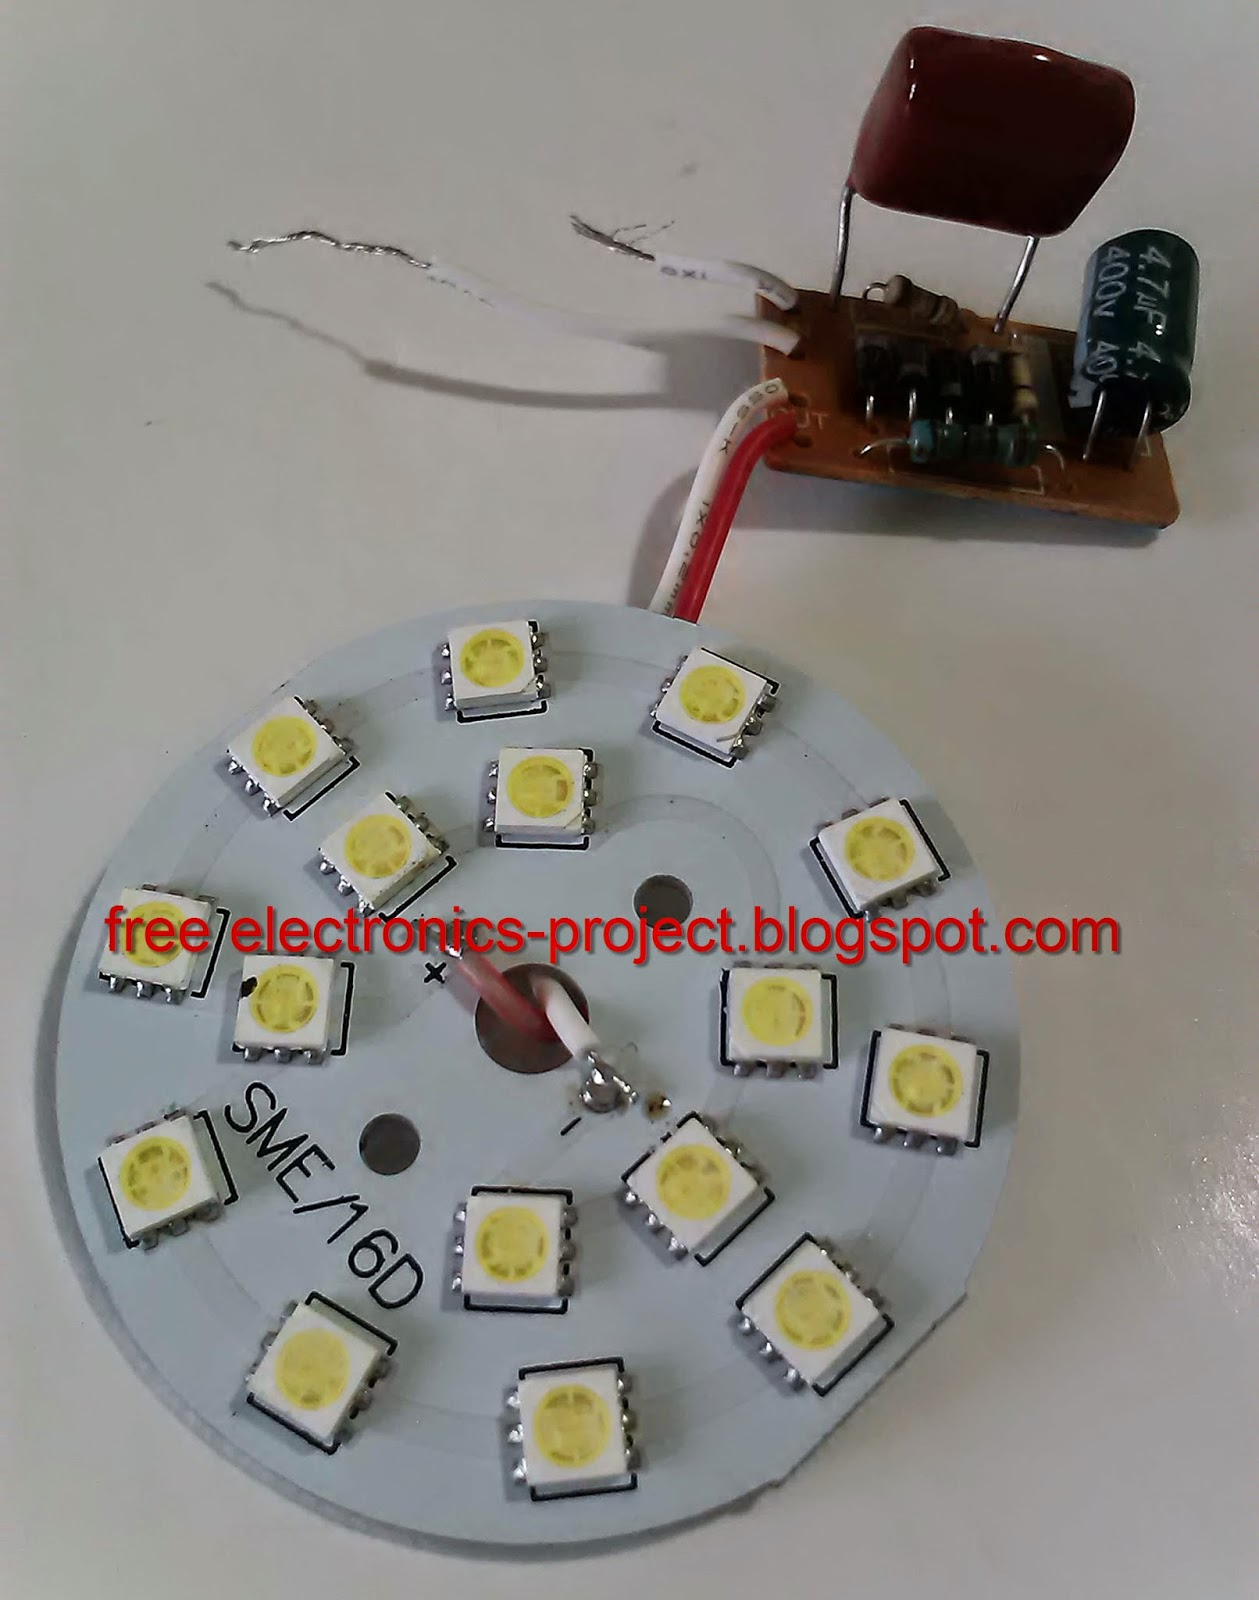 AN UFzZ2svY together with 0 300v Variable Voltage Current likewise How To Make Led Bulb Circuit additionally Free Electronics Project blogspot as well 220V 380V 230V 400V 240V 415V 8kw To 35kw 1500rpm 1800rpm AC Three Phase Electric Motor Generators. on make 400v dc from 220v ac circuit